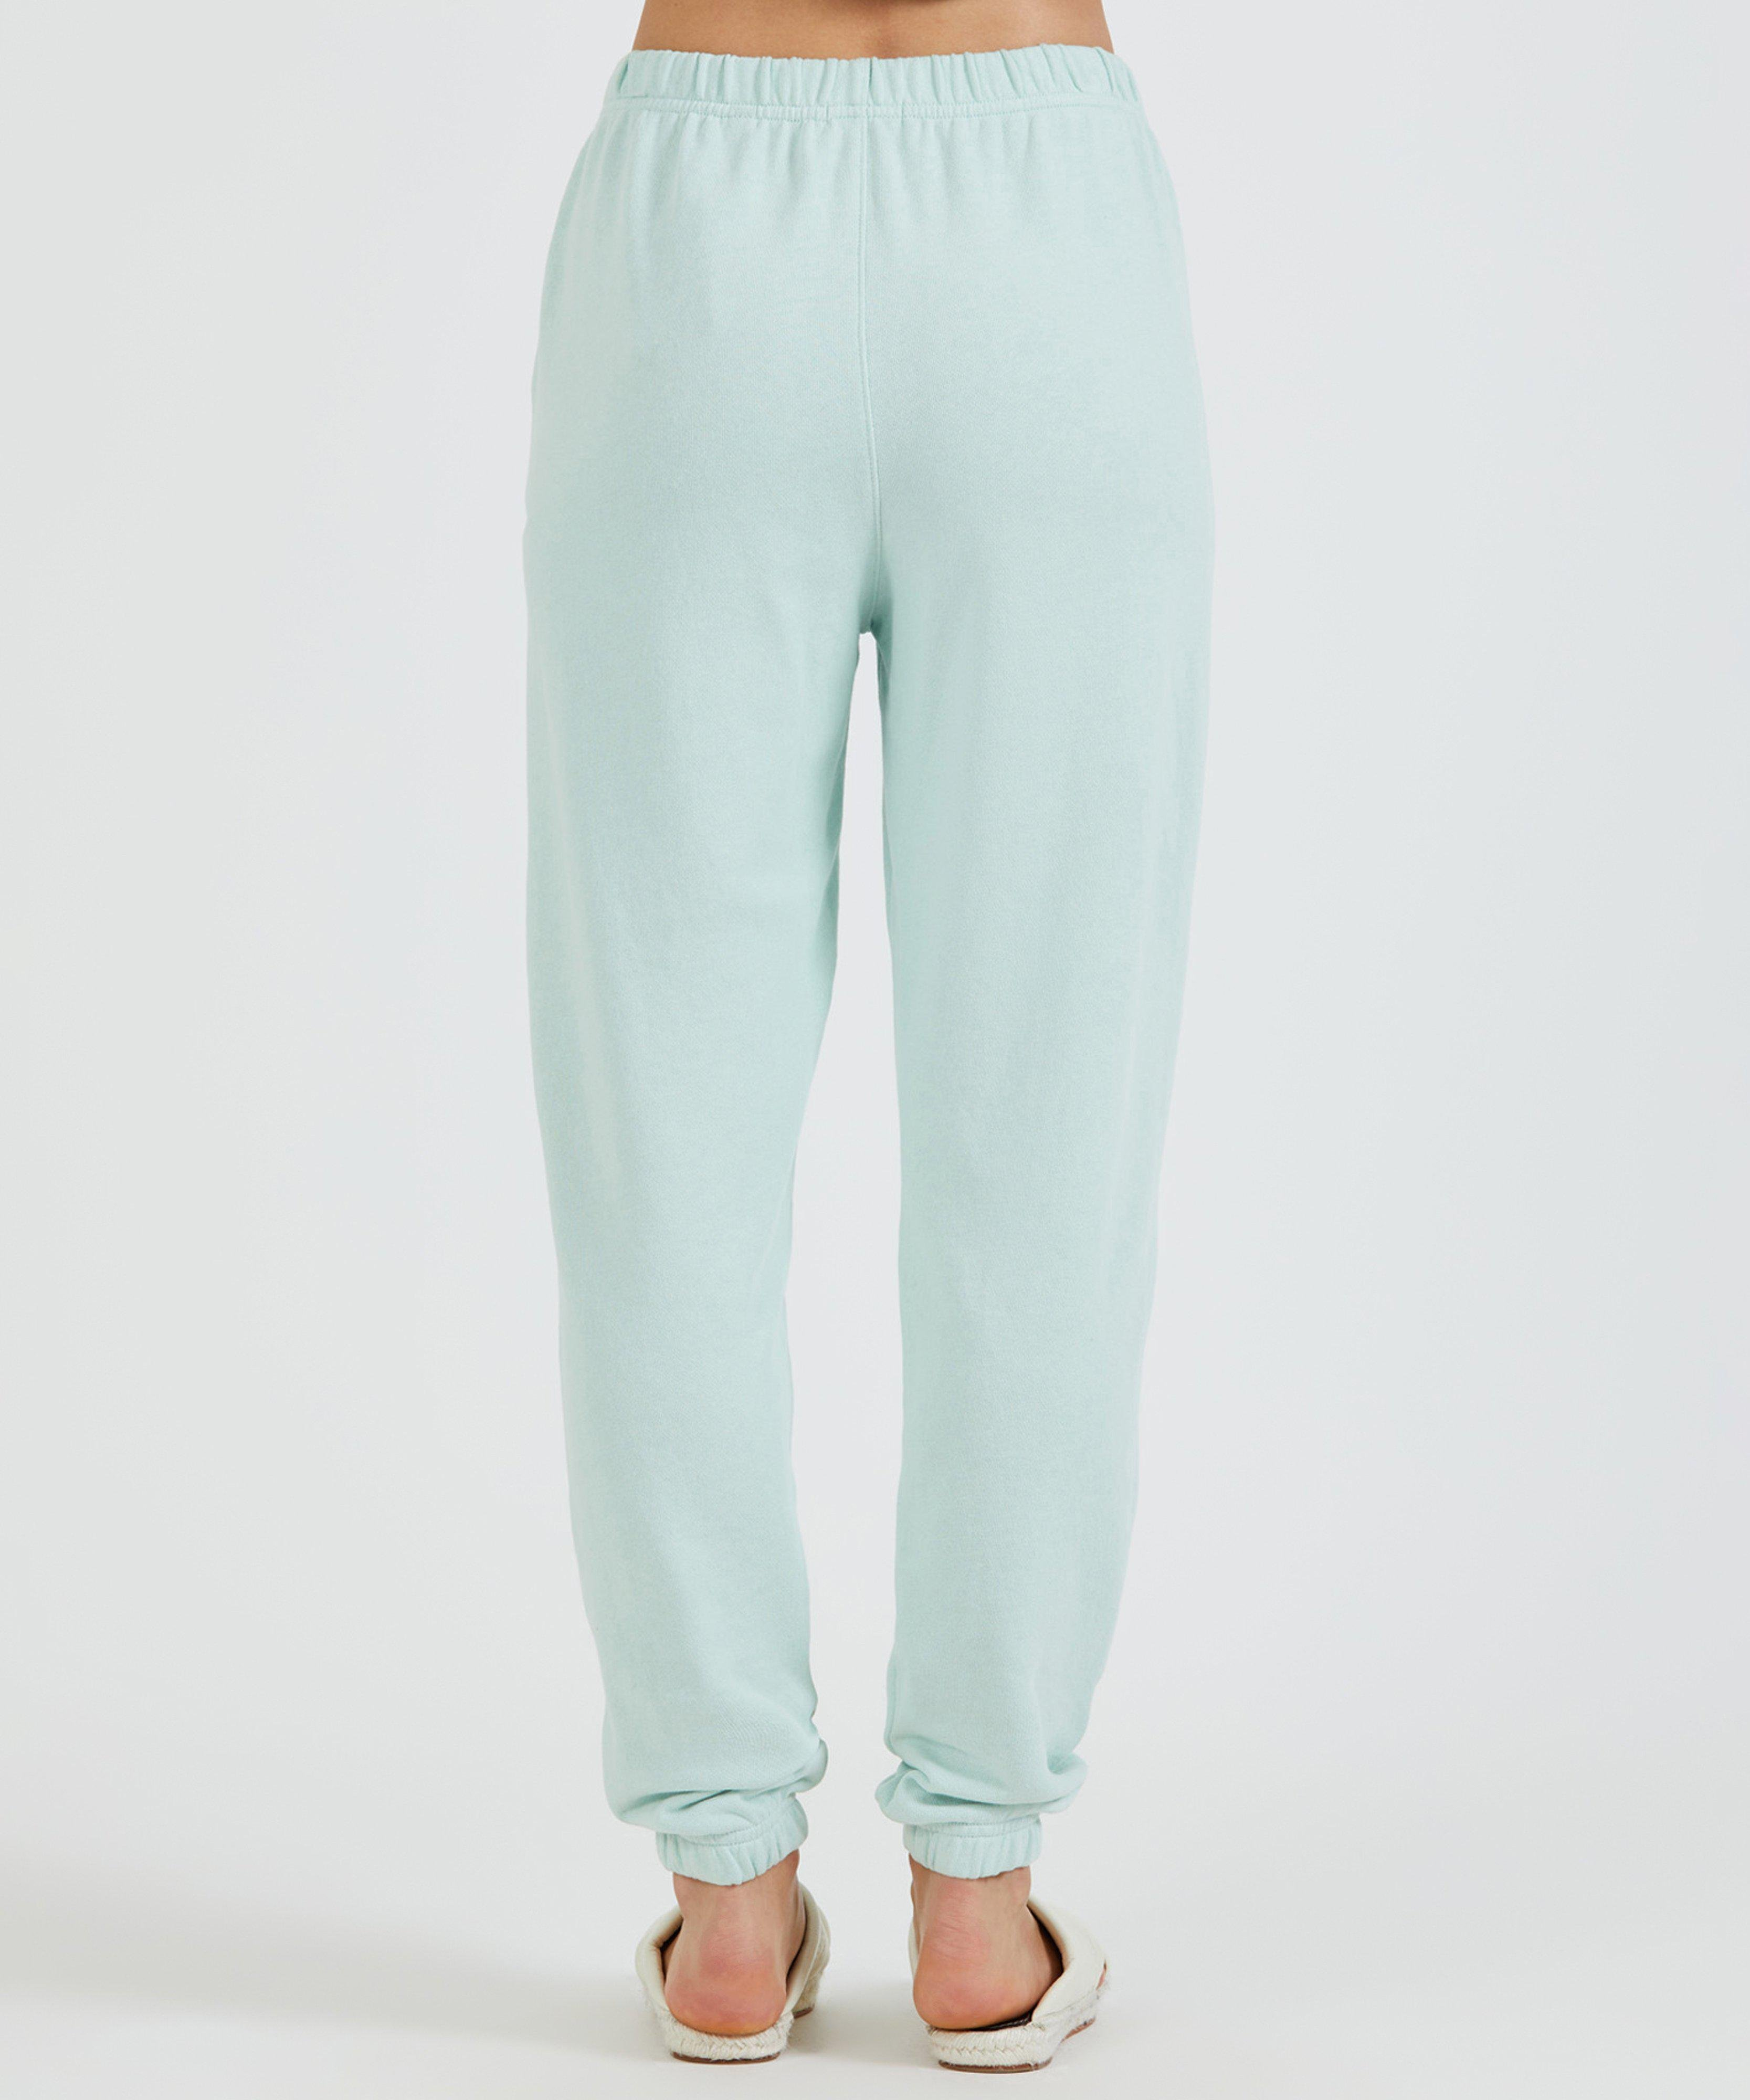 French Terry Pull-On Pant - Mint 2